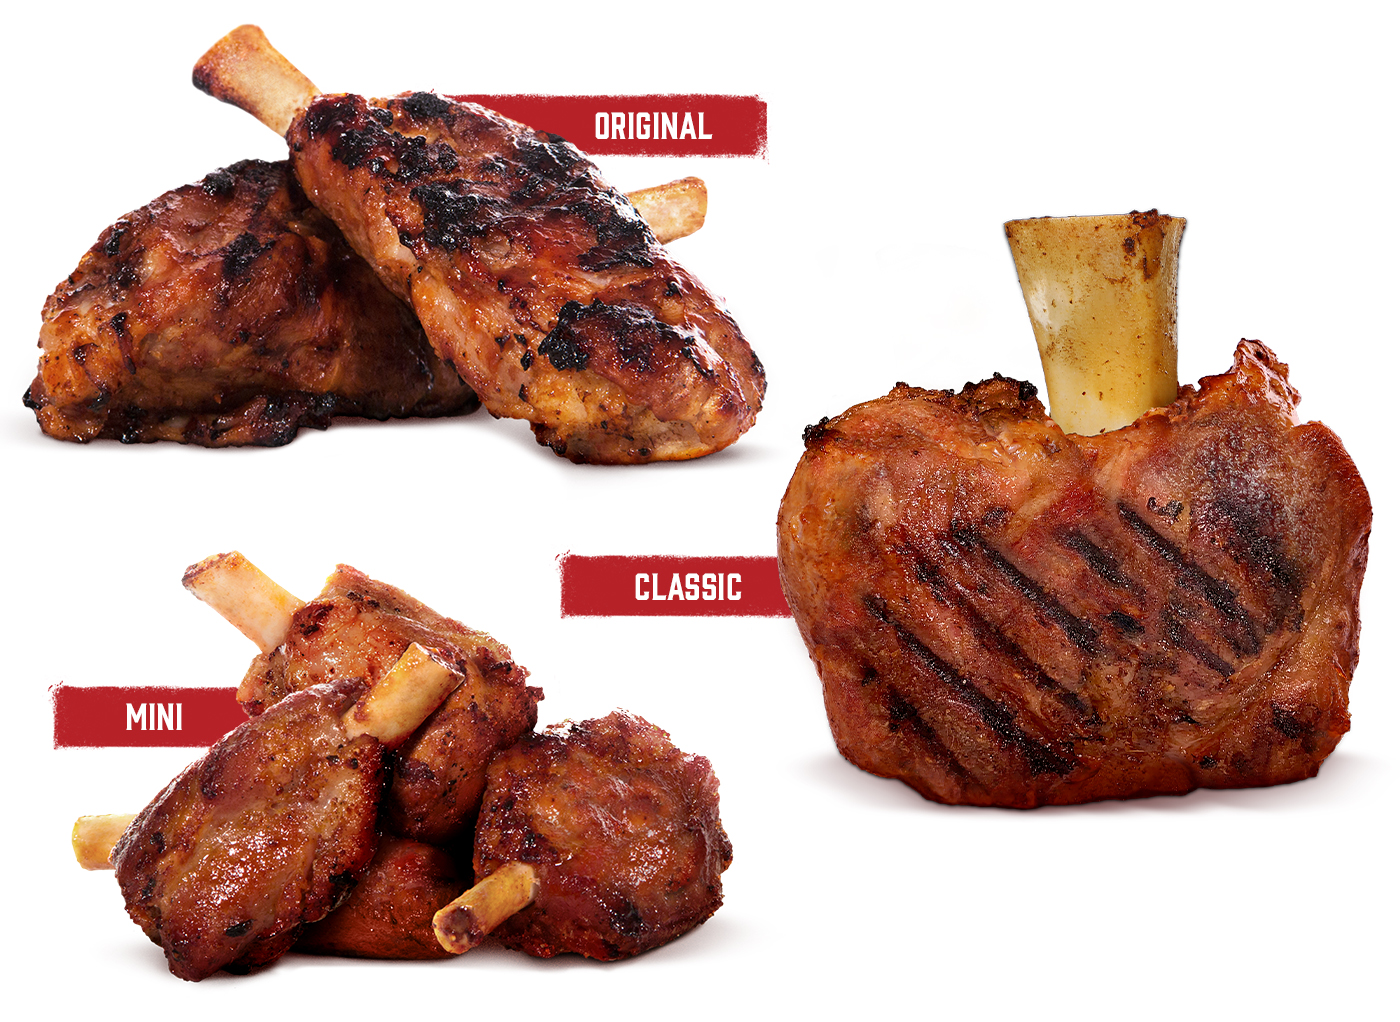 Showcase_Pioneer_Meats_Pig_Wings_displayed_prepared_and_in_3_sizes_available_form_smallest_to_largest_:_mini,_Original,_Classic